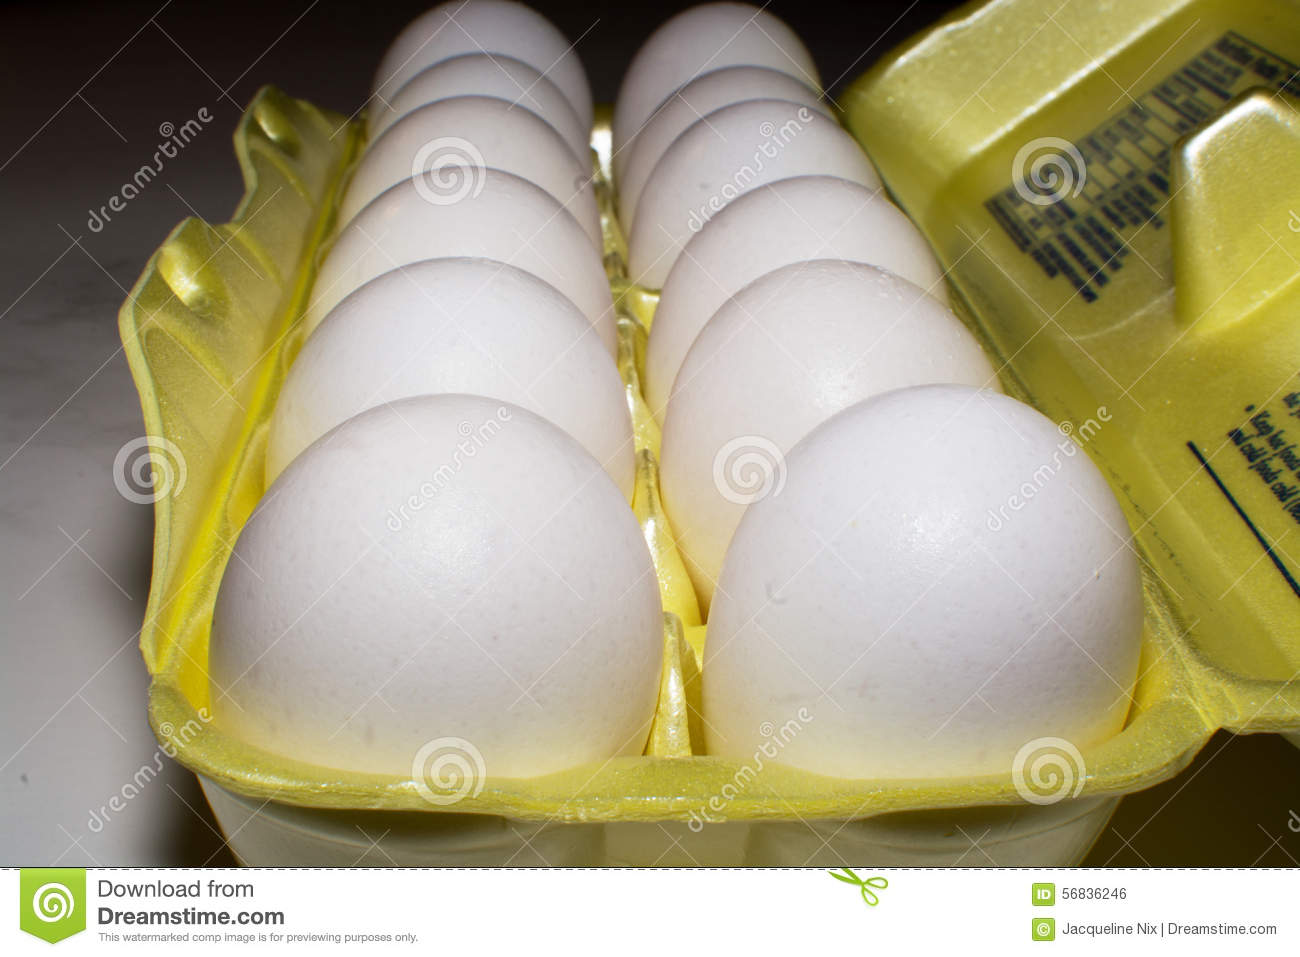 Dozen Eggs In A Yellow Carton Stock Photo - Image: 56836246